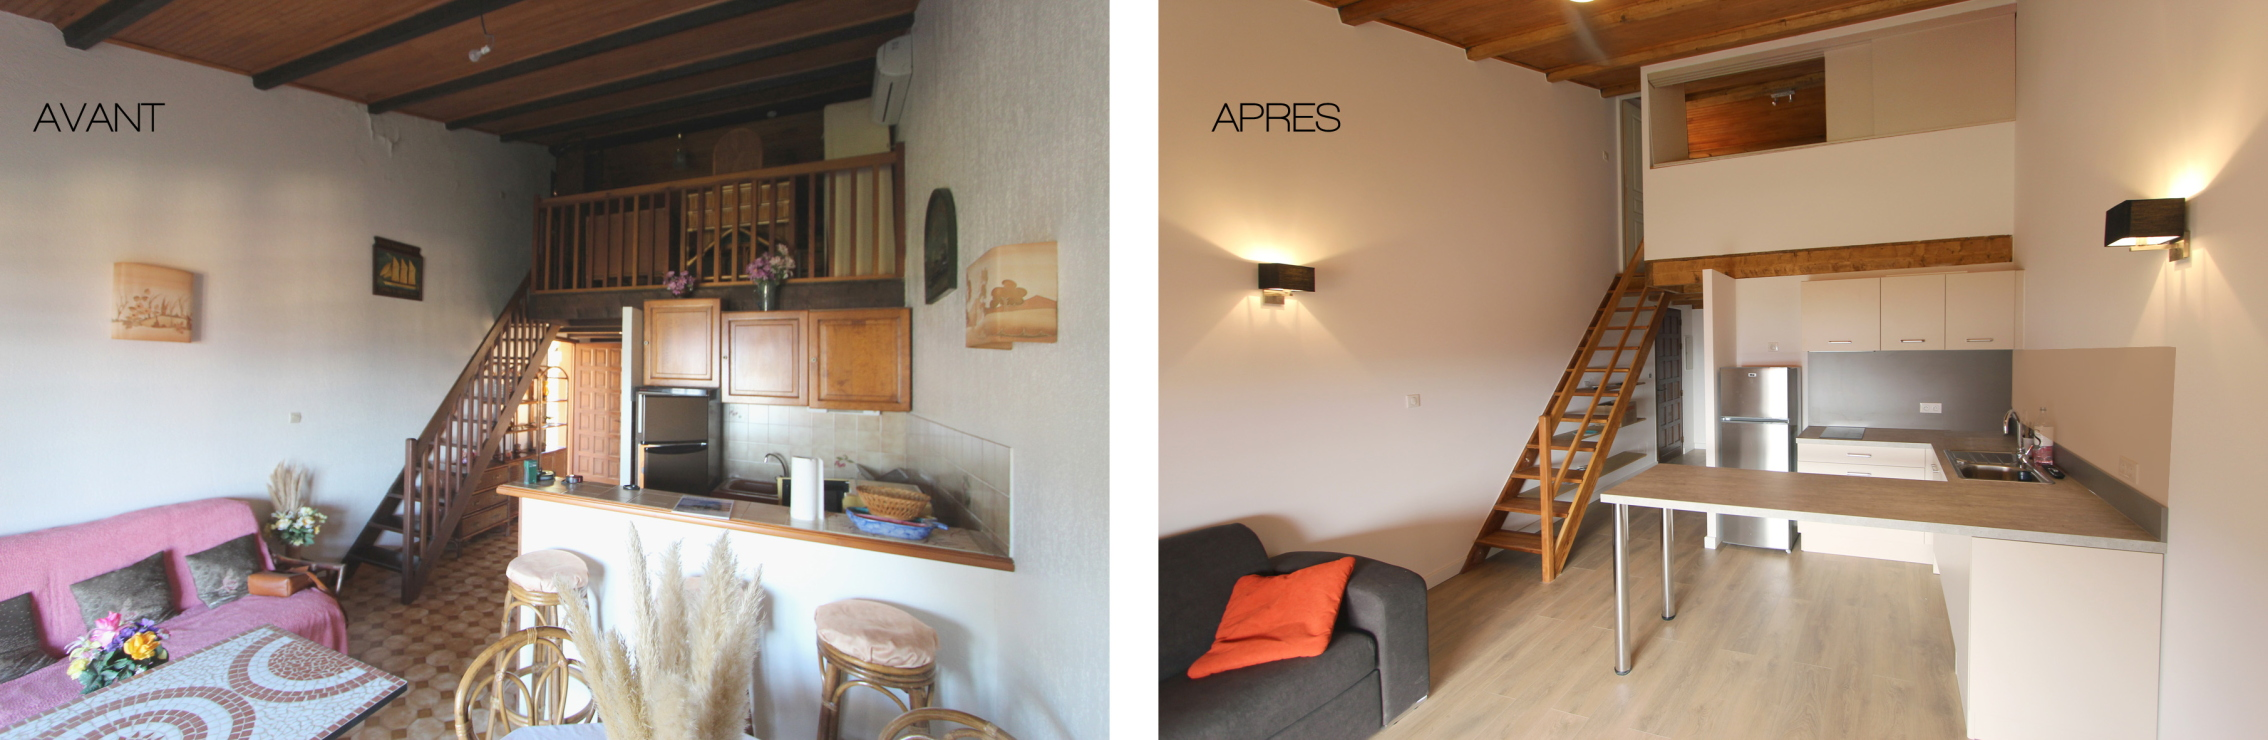 Renovation Appartement Avant Apres #10: Avant - Apres : Le Sejour